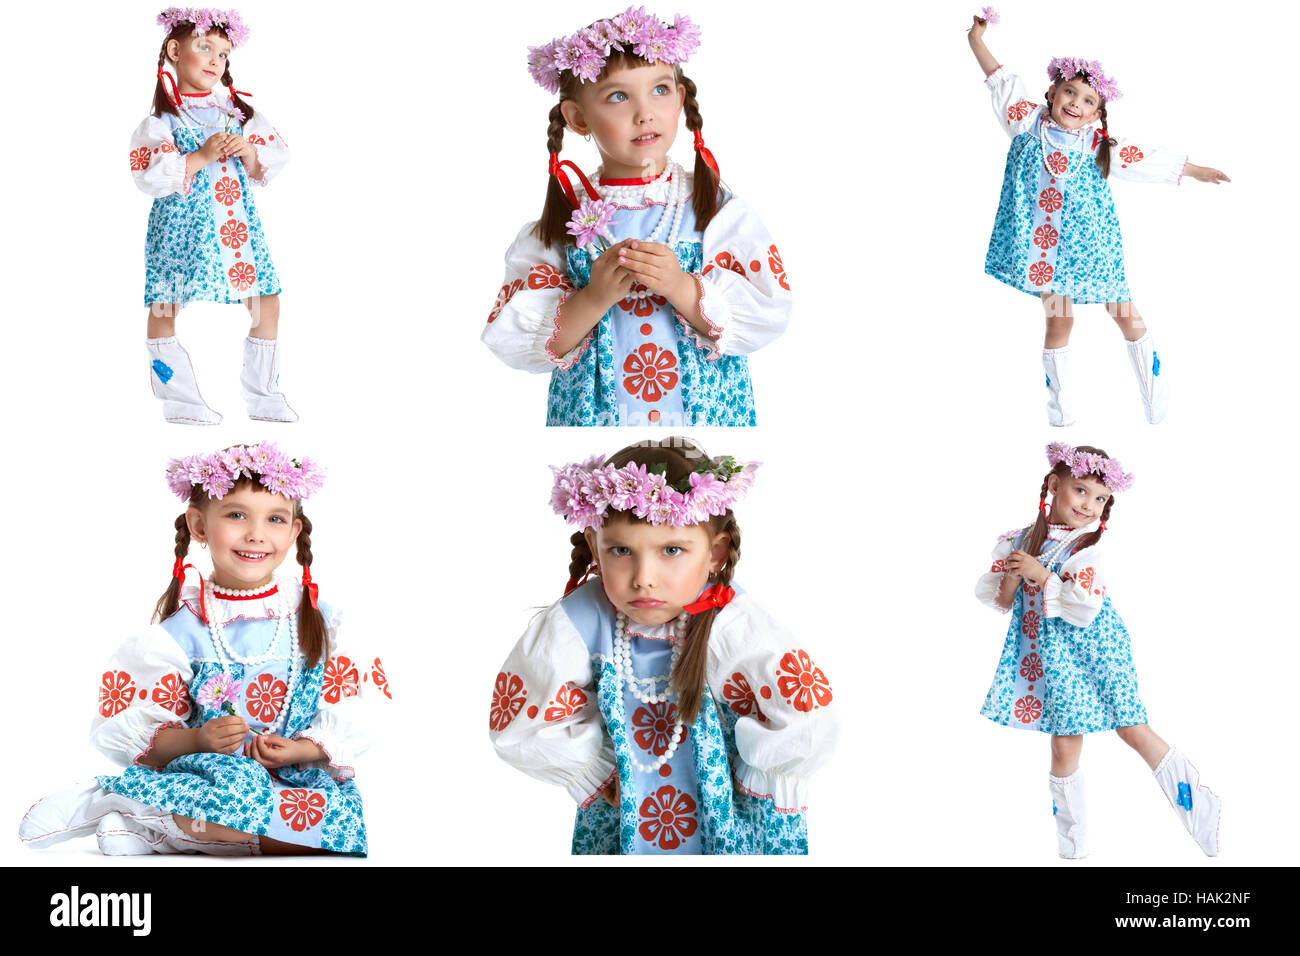 Collage of adorable little dancer in folk dress - Stock Image